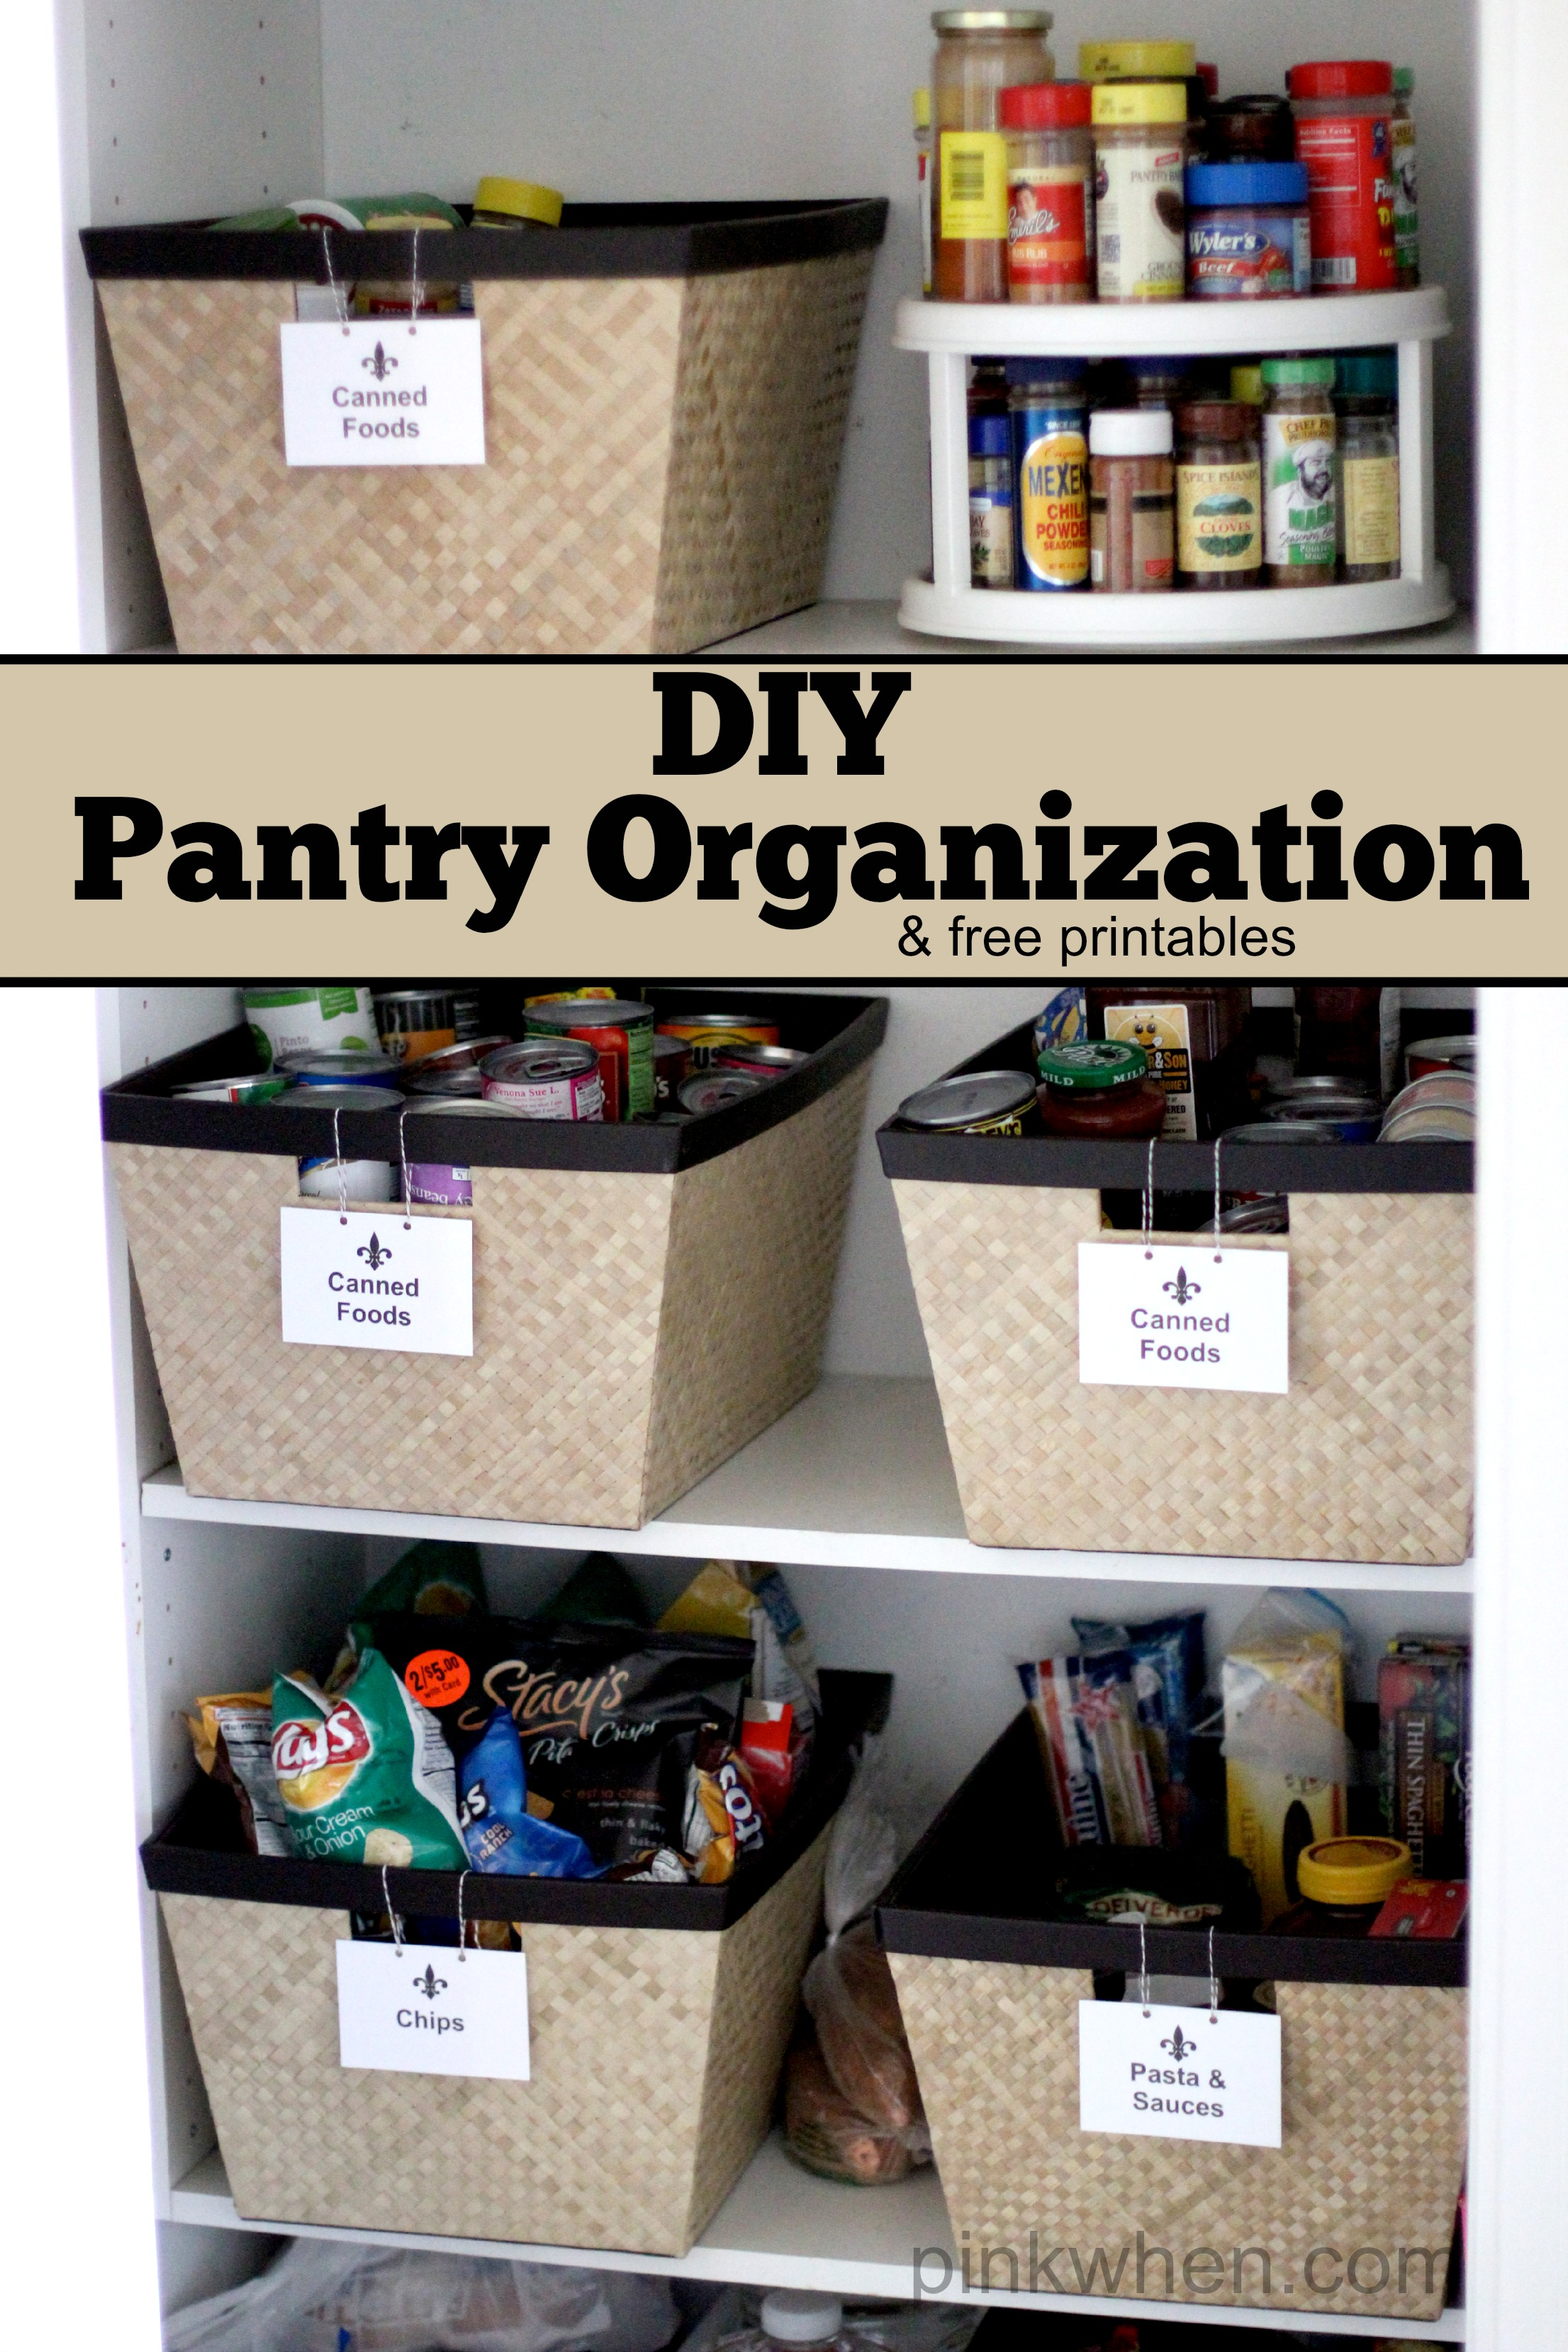 DIY-Pantry-Organization-via-PinkWhen.com_